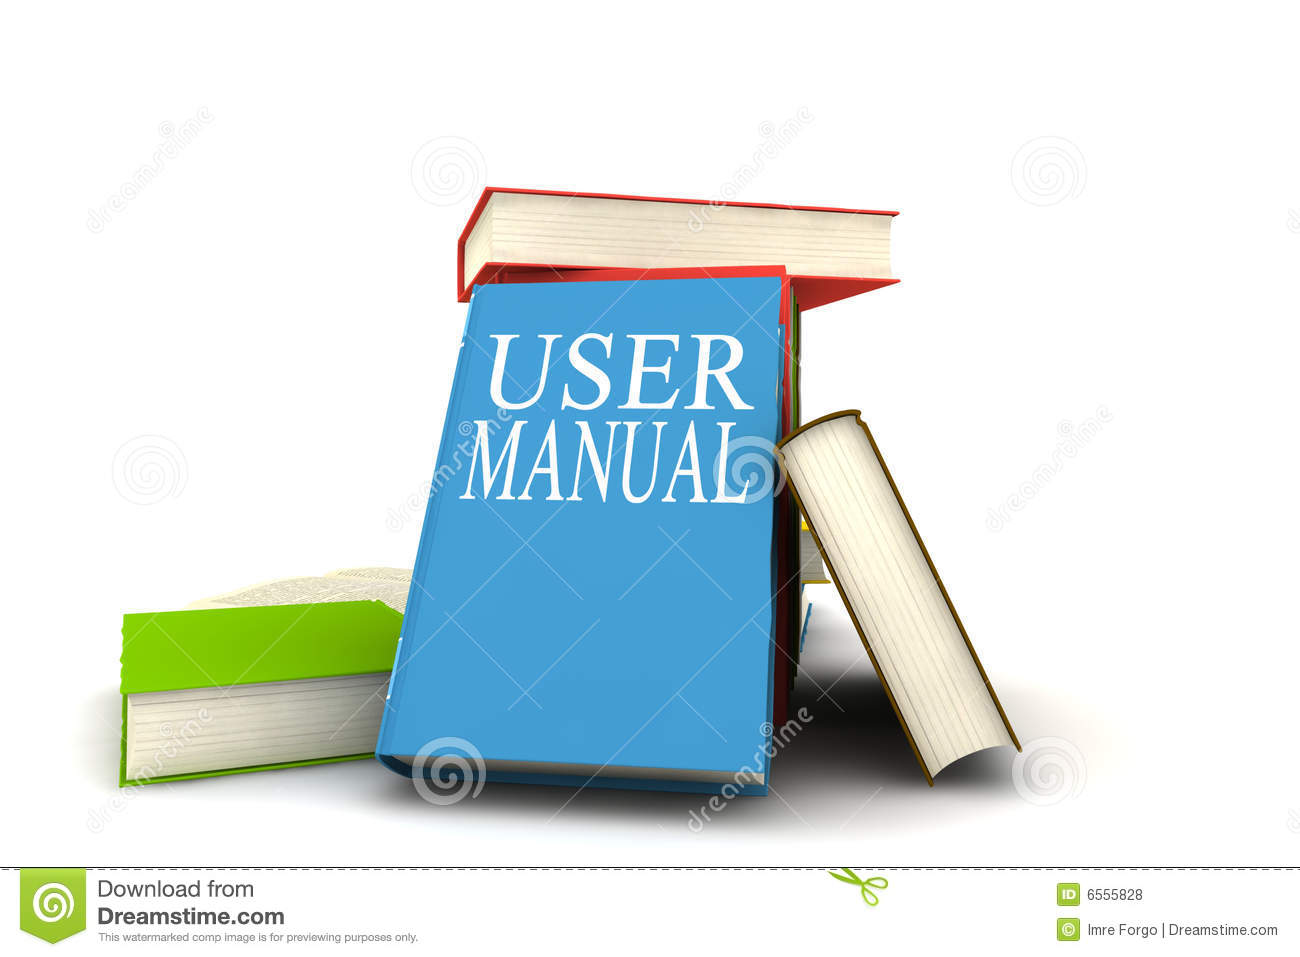 User manual clipart clipground for Vector canape user manual